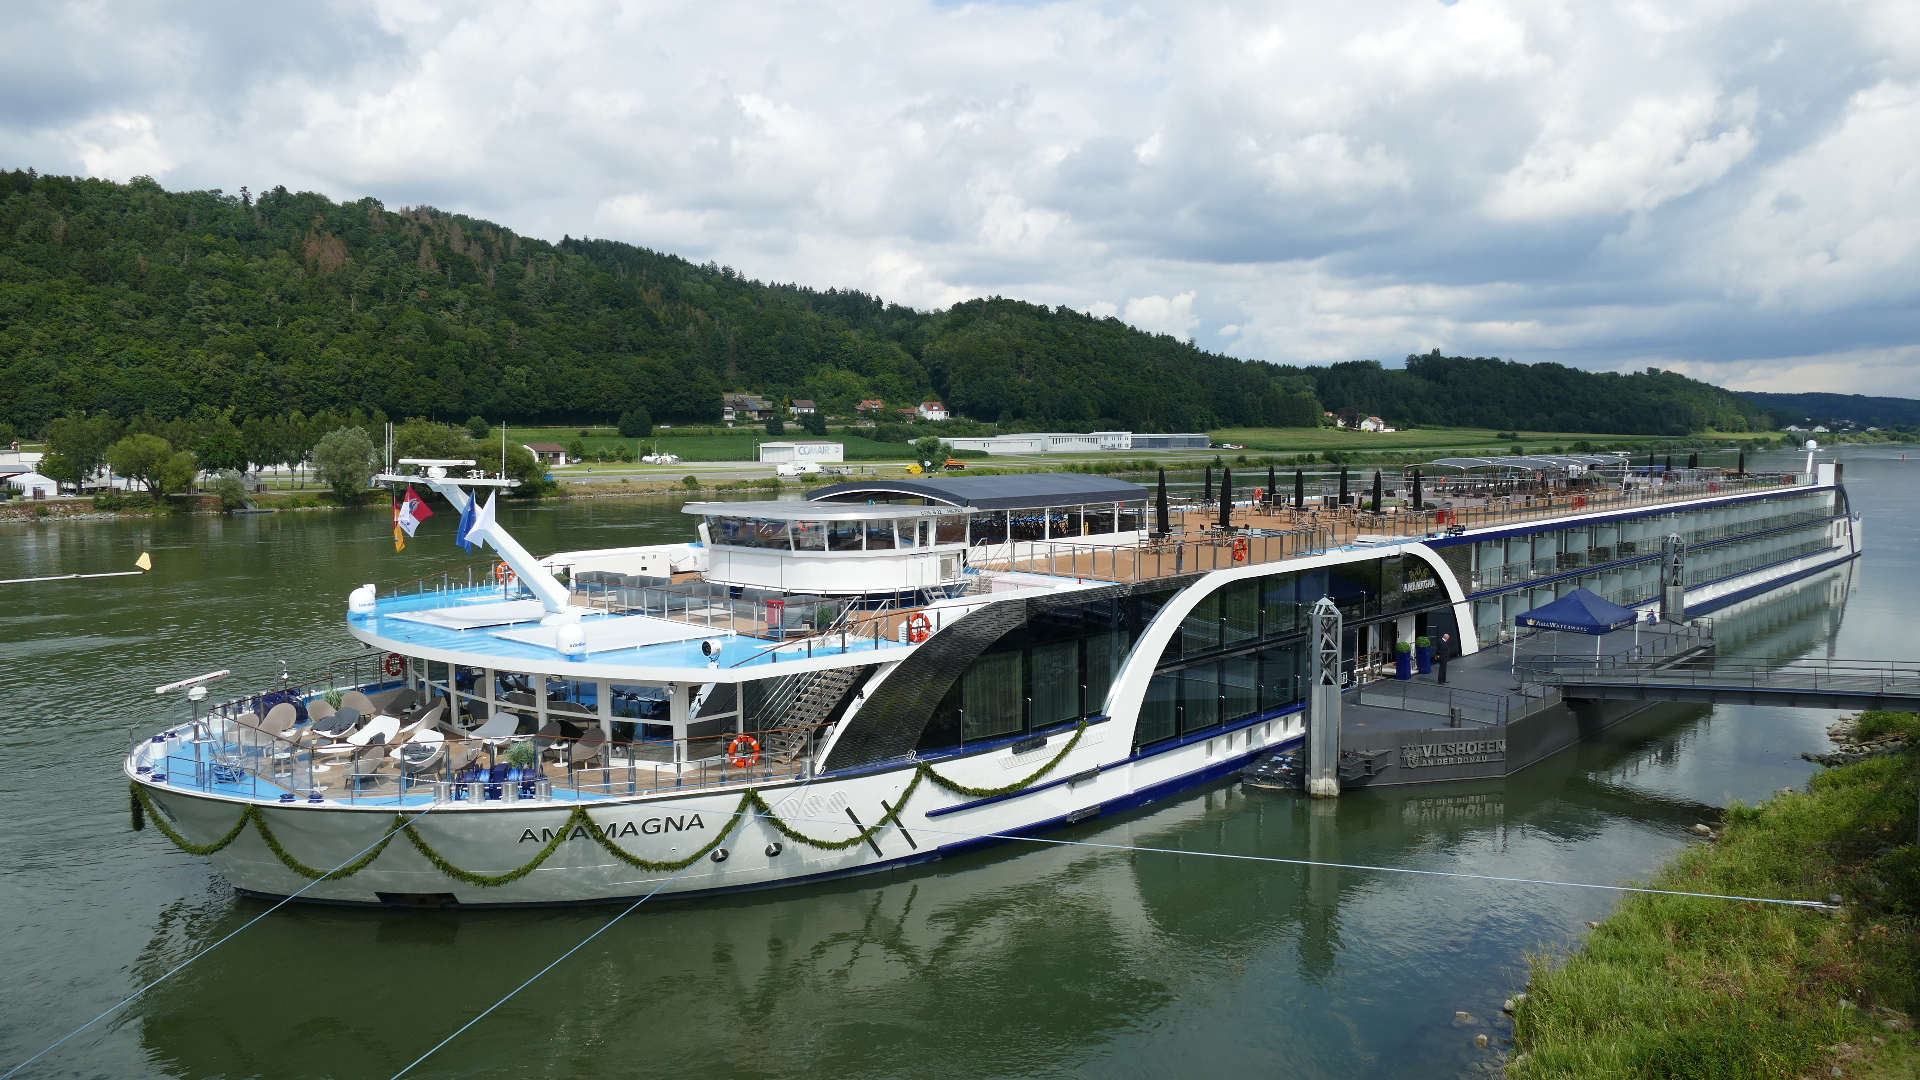 Do you like to stay active on a cruise? AmaWaterways is the leader in active river cruises with opportunities